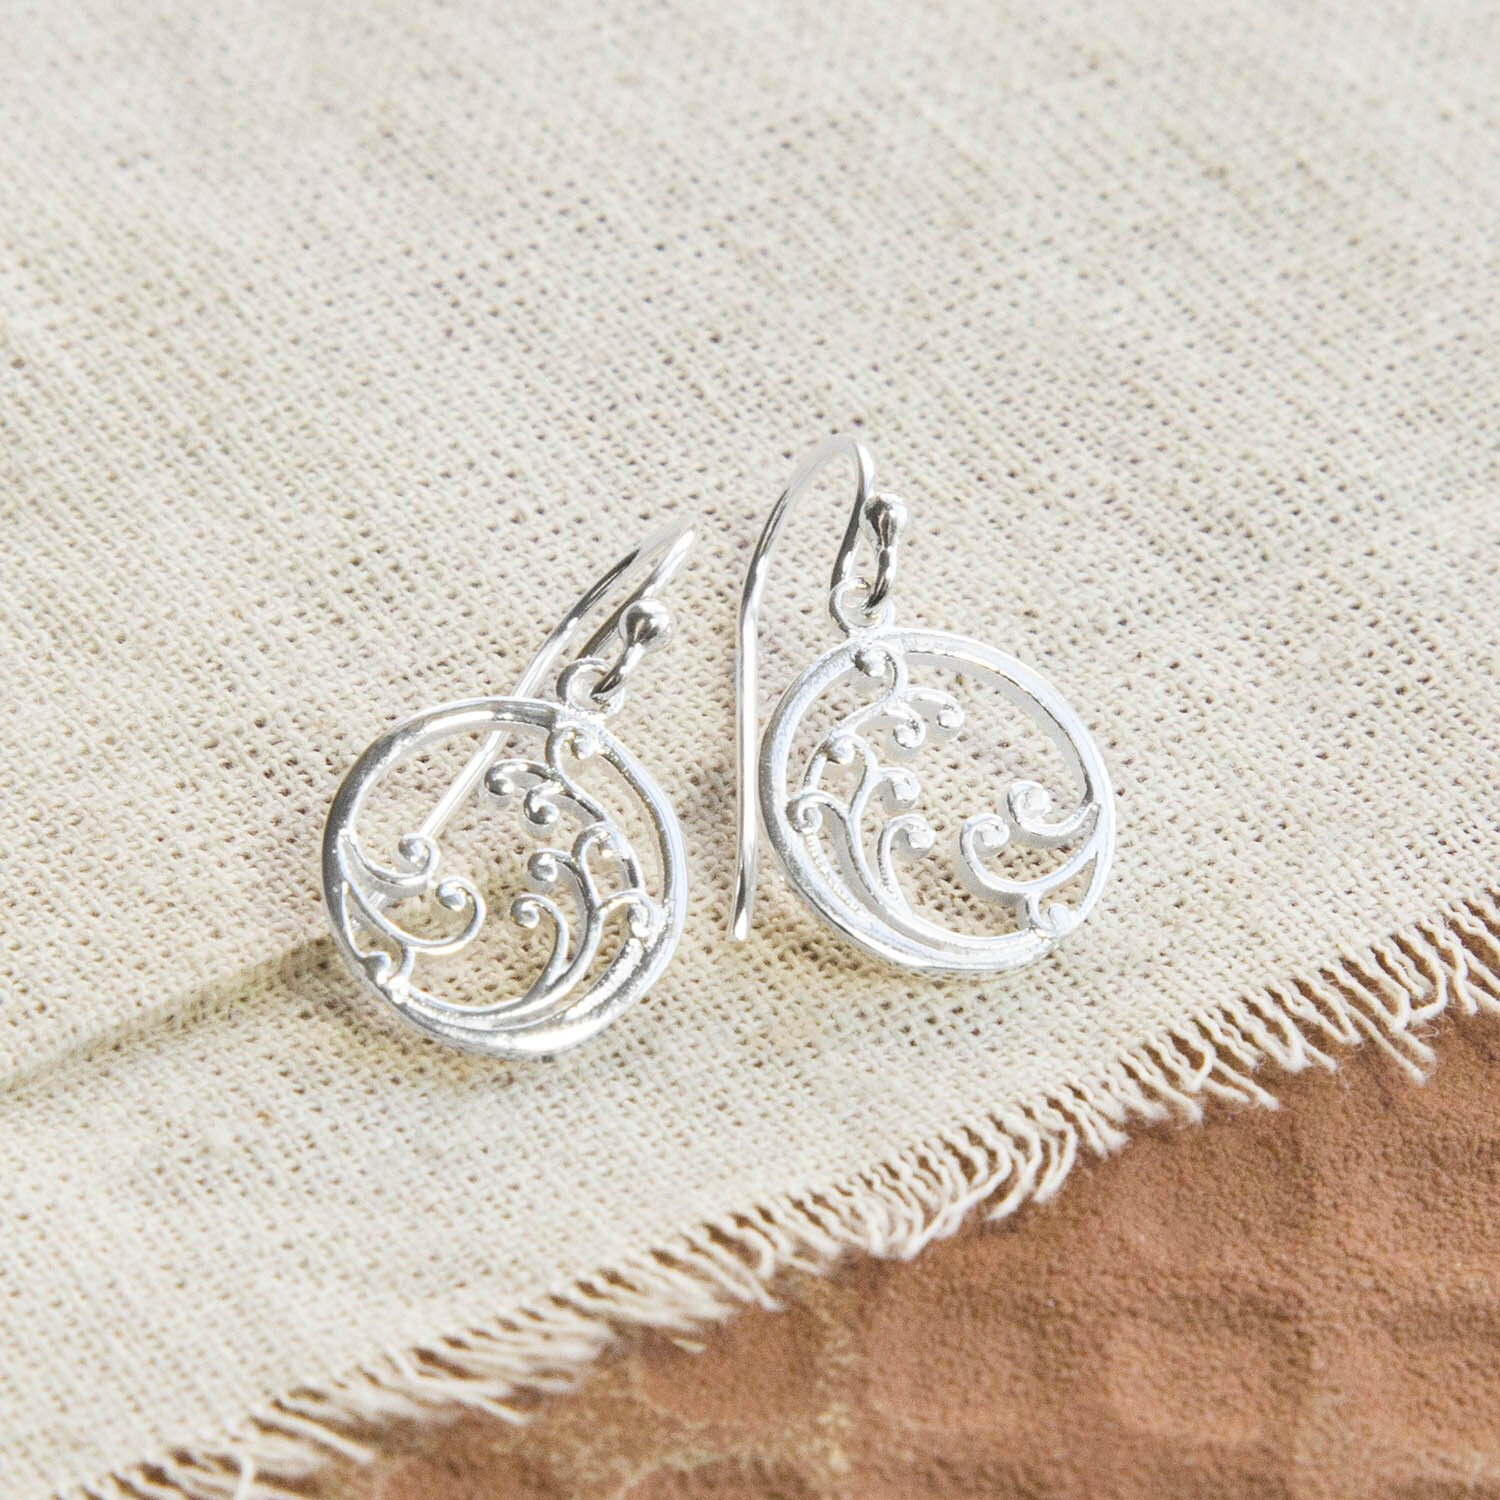 Silver drop earrings with wave details, laid out on a canvas background with terracotta tile